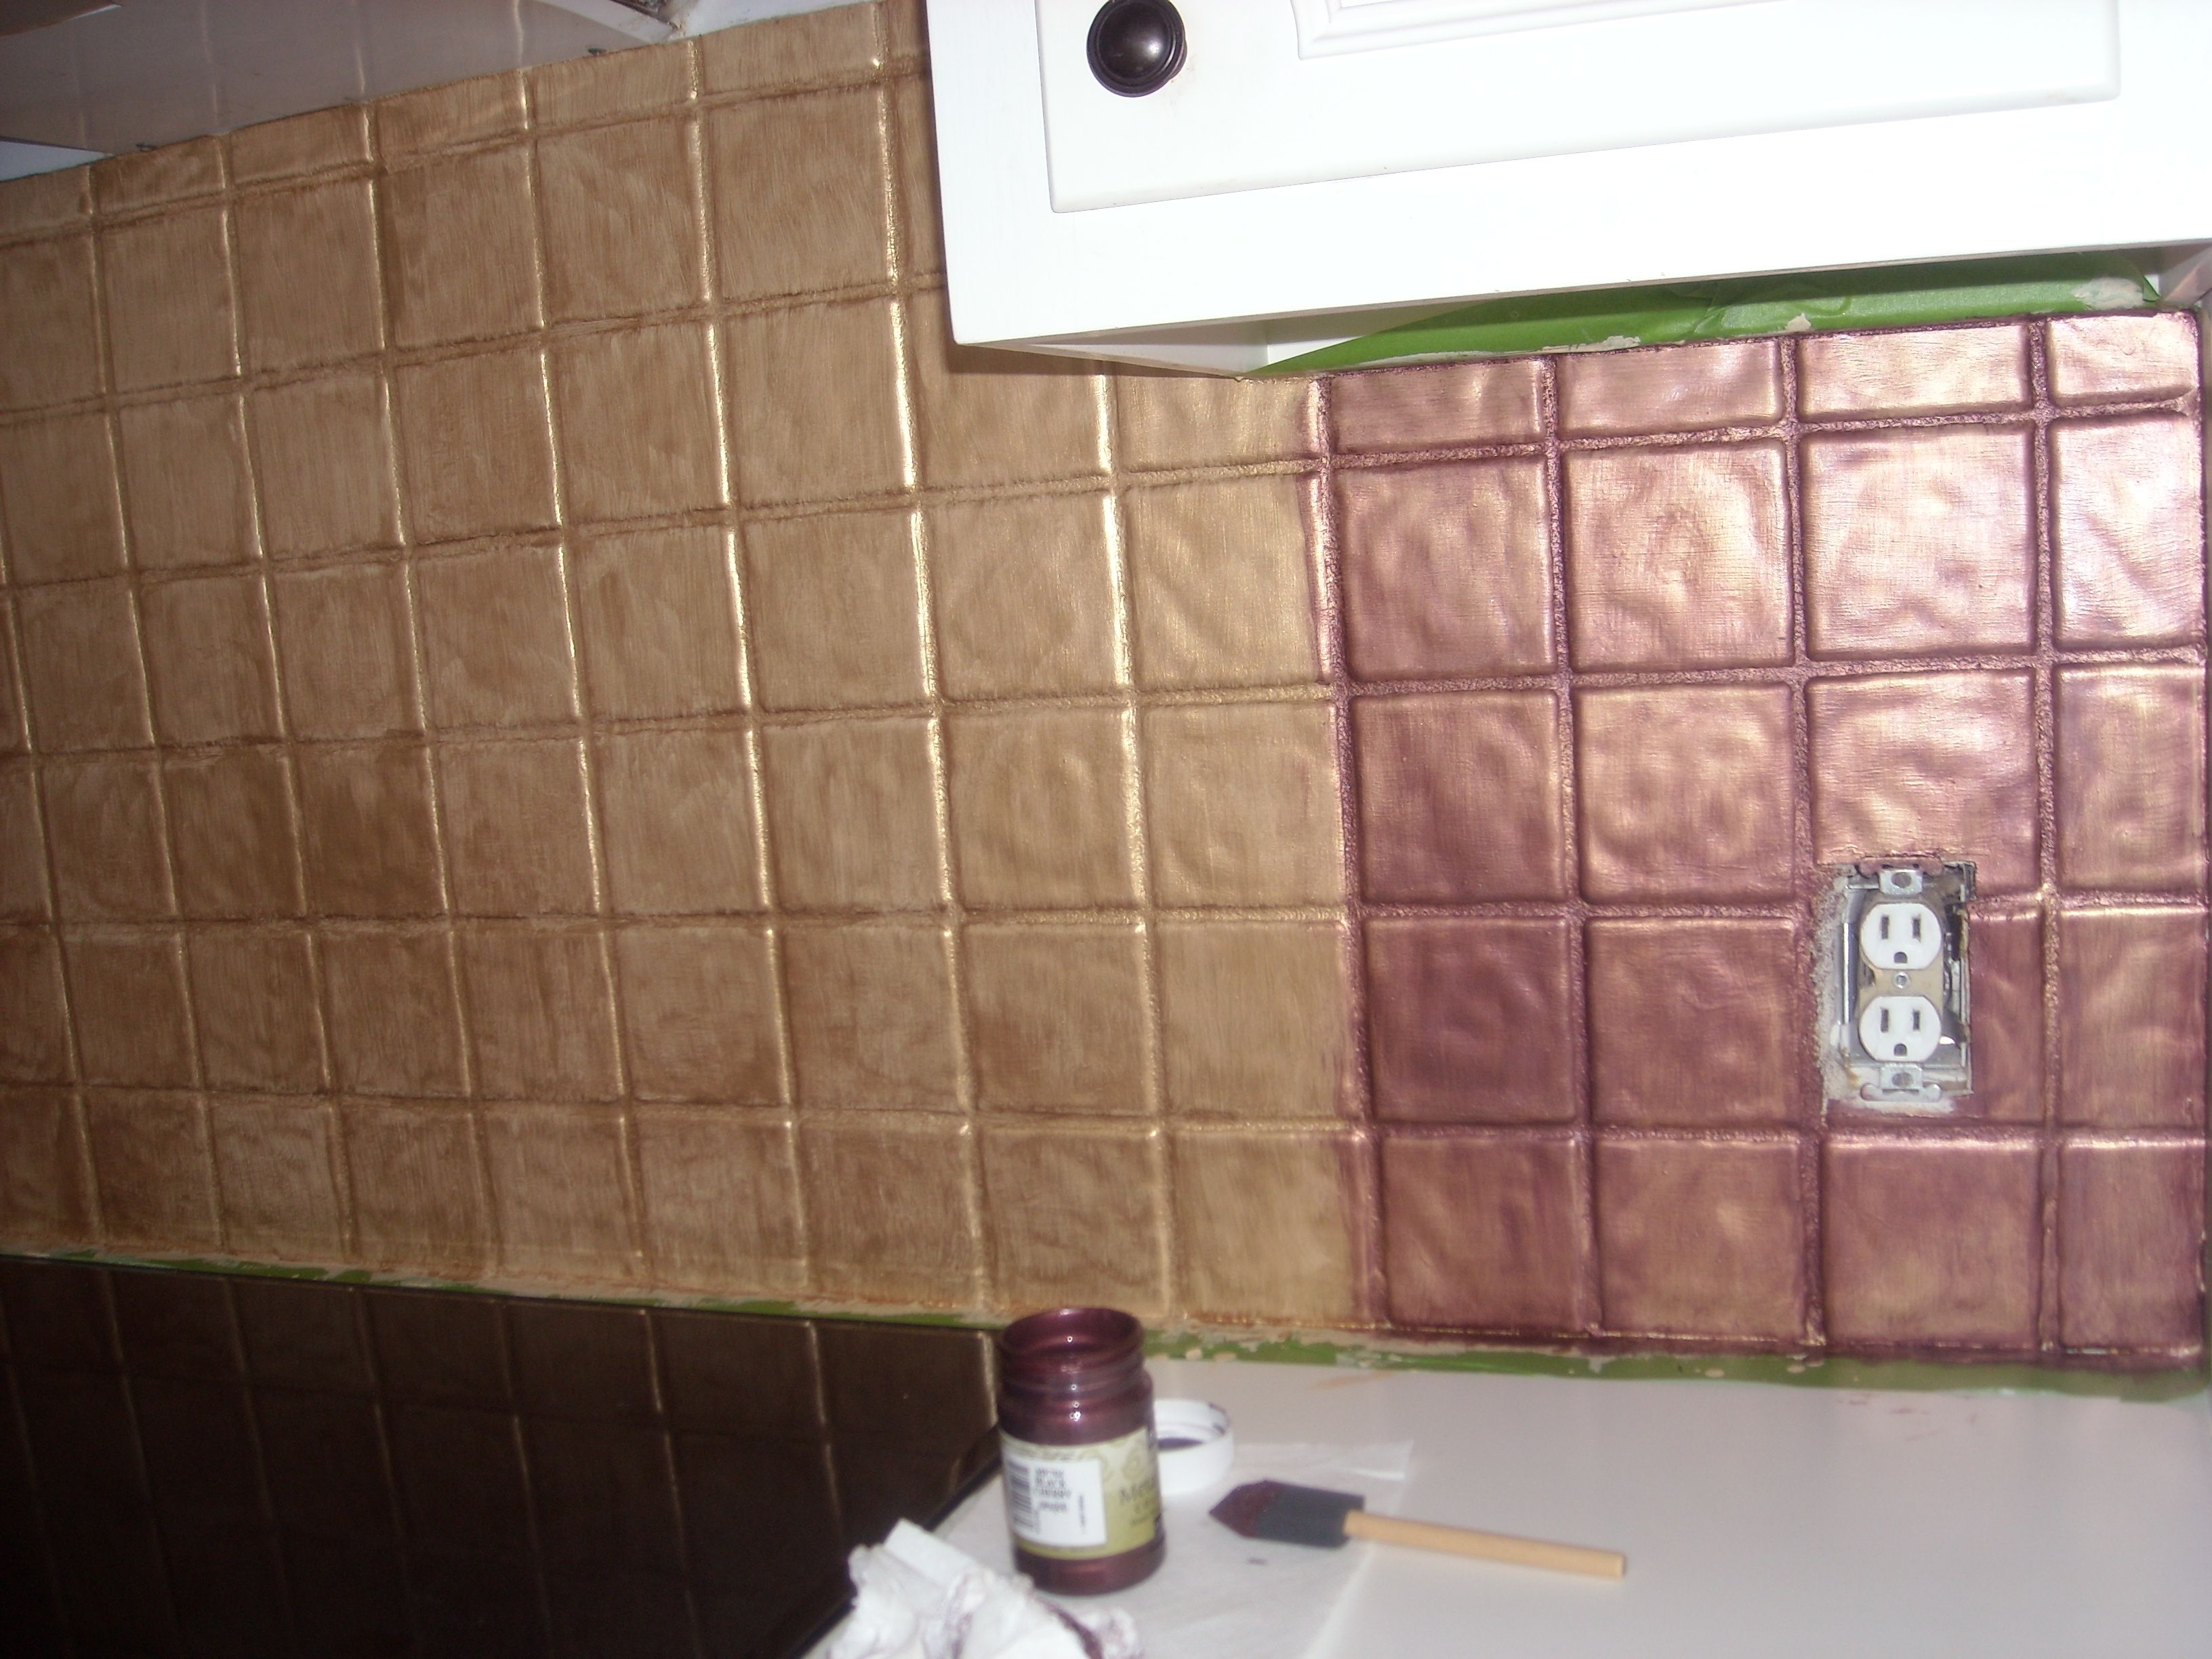 Painting Tiles In The Kitchen Yes You Can Paint Over Tile I Turned My Backsplash Kitchen